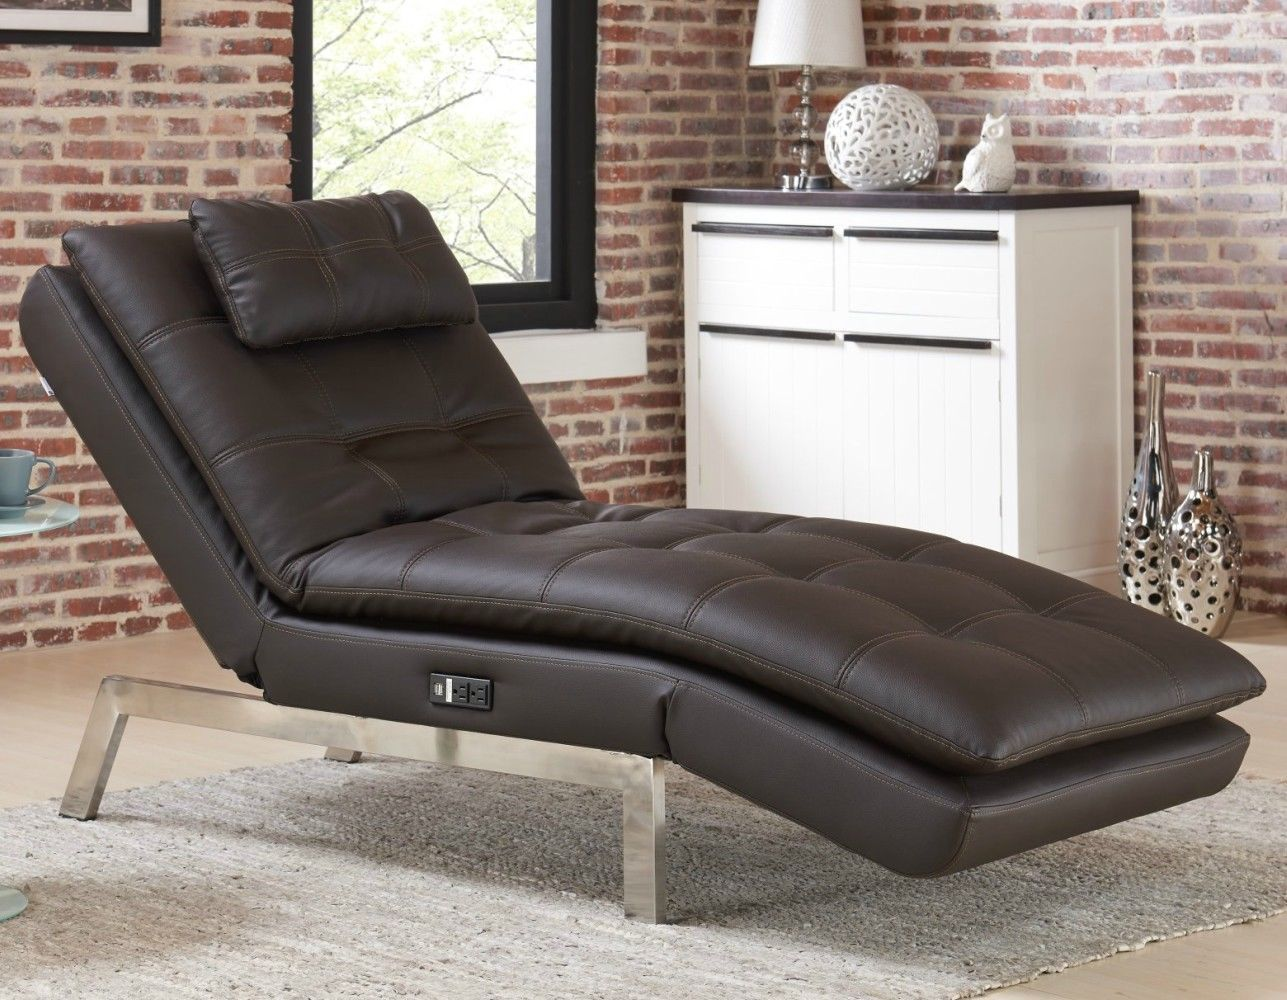 Leather Chaise Lounge Chair Modern Quality Sofa Convertible Gaming